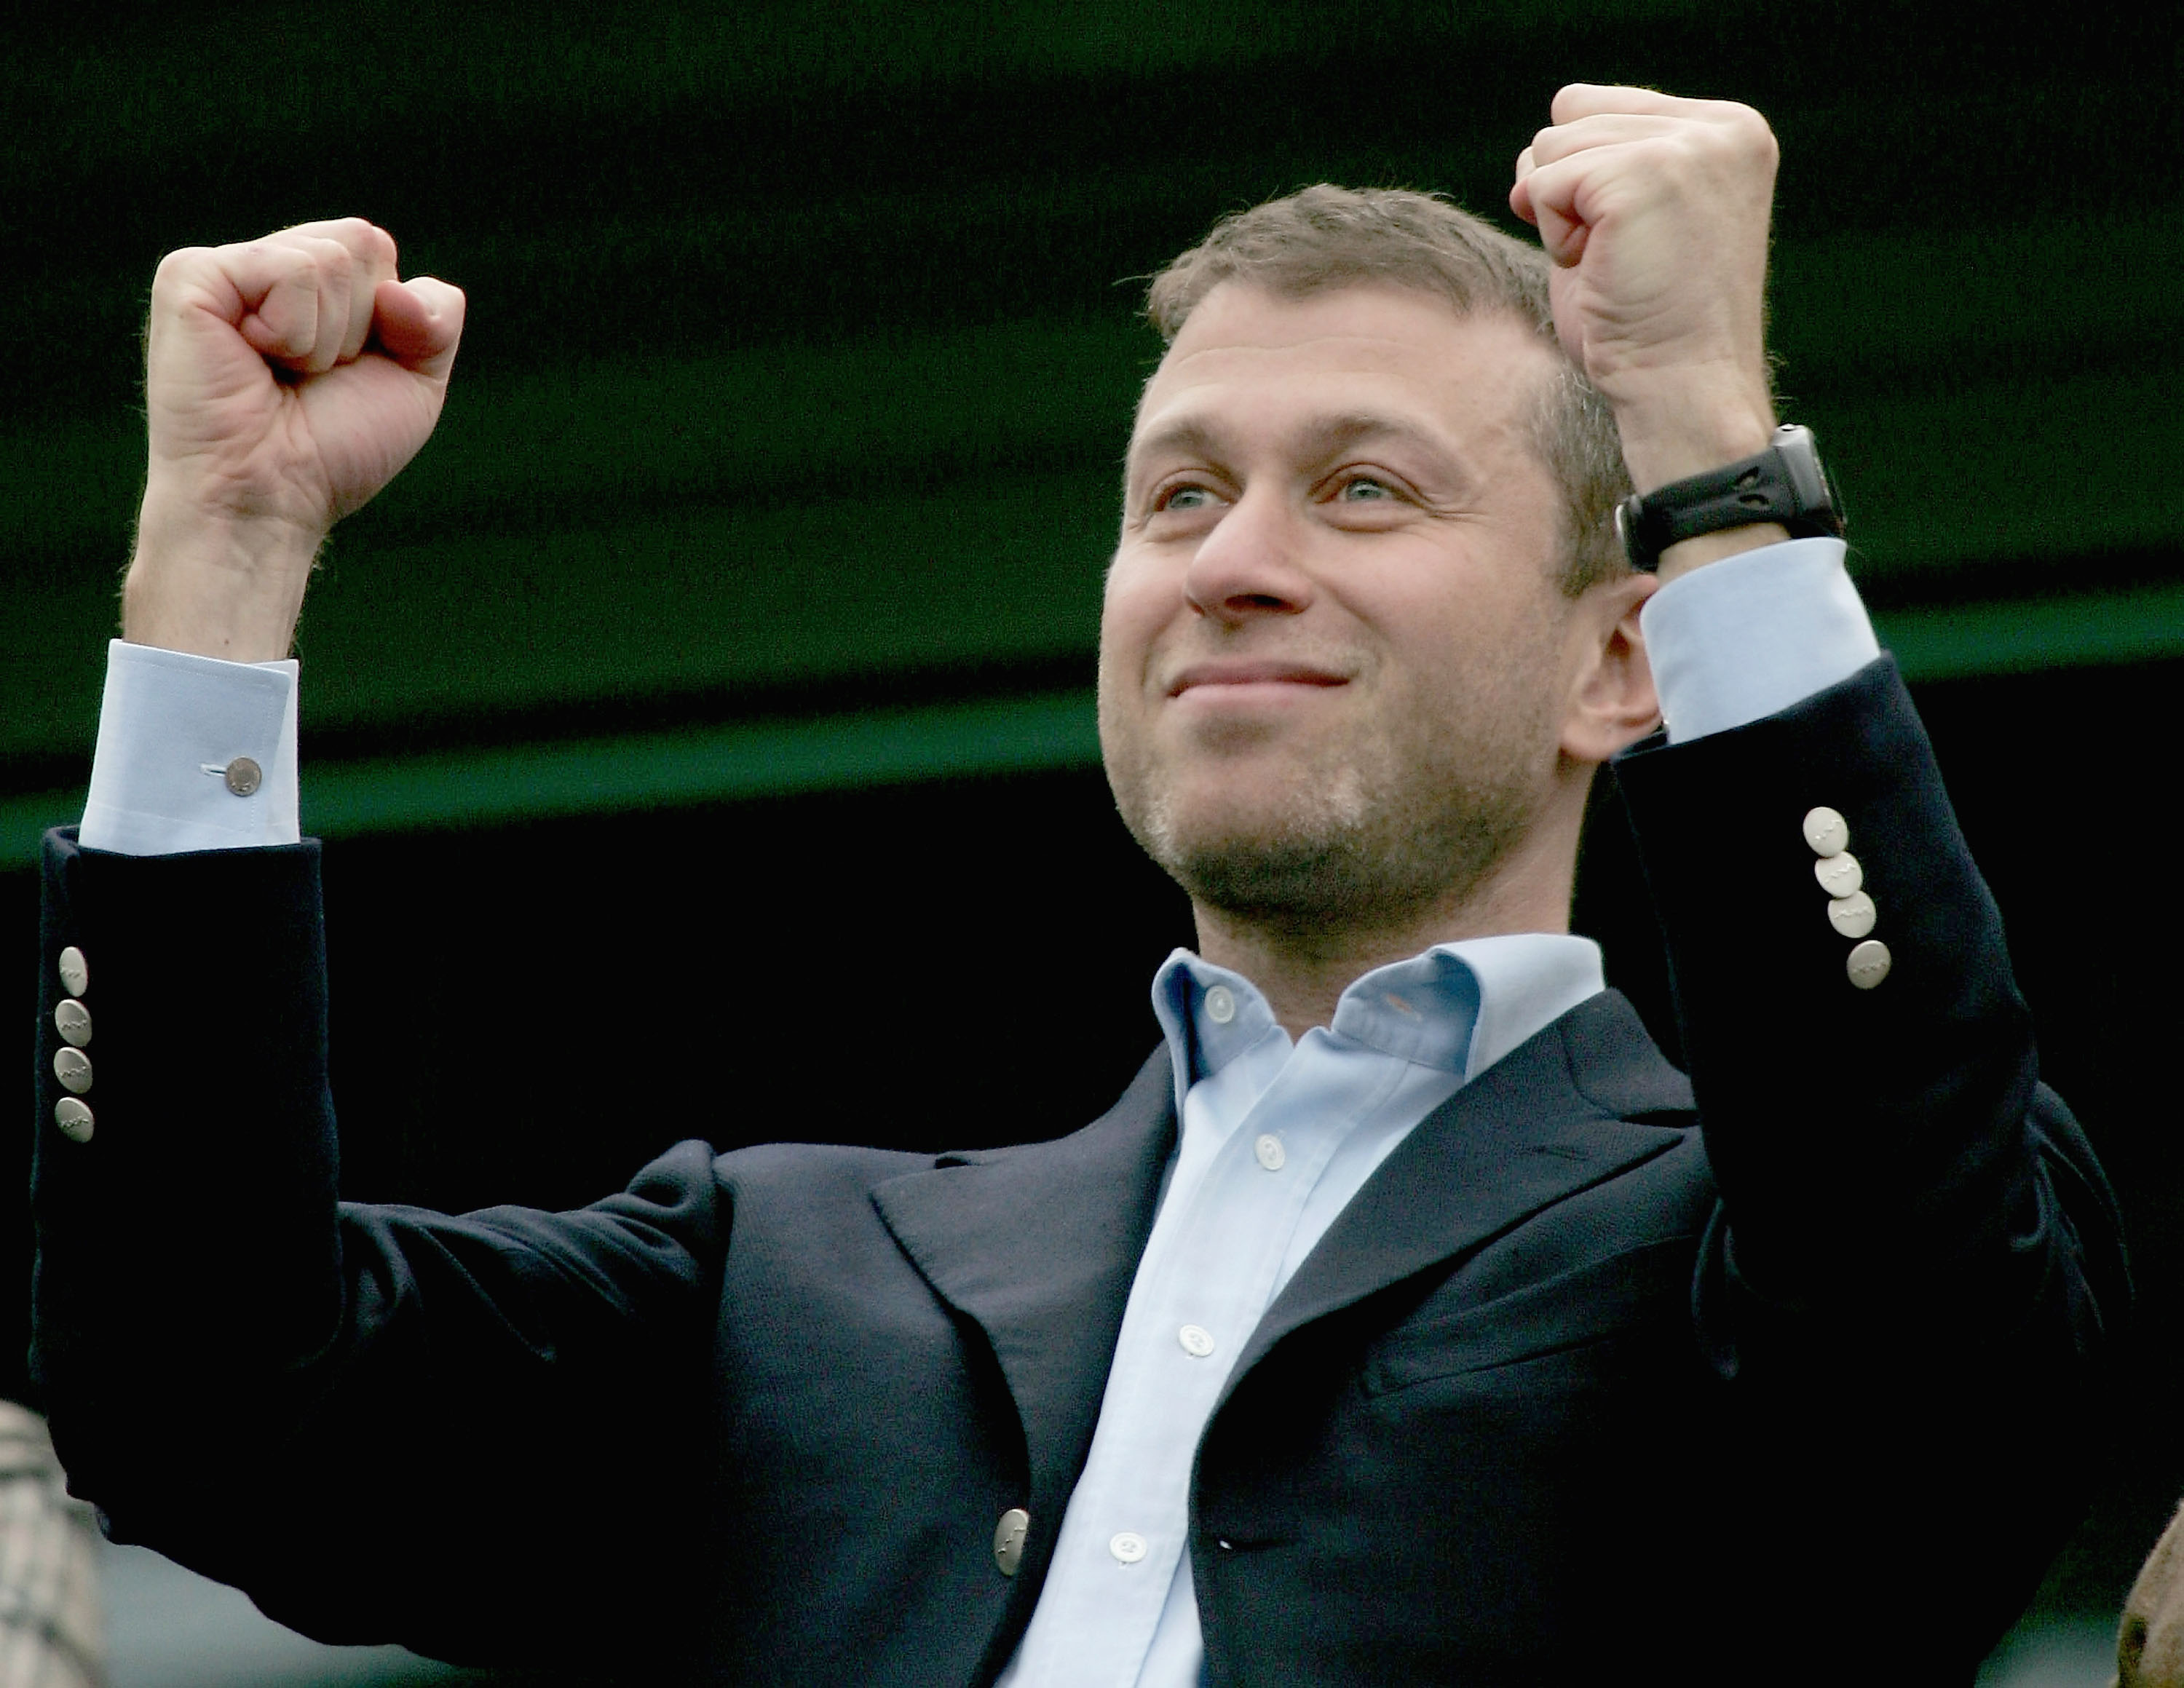 LONDON - APRIL 23:  Chelsea Owner, Roman Abramovic salutes his players after winning the Barclays Premiership match between Chelsea and Fulham 3-1 at Stamford Bridge on April 23, 2005 in London, England.  (Photo by Ben Radford/Getty Images)